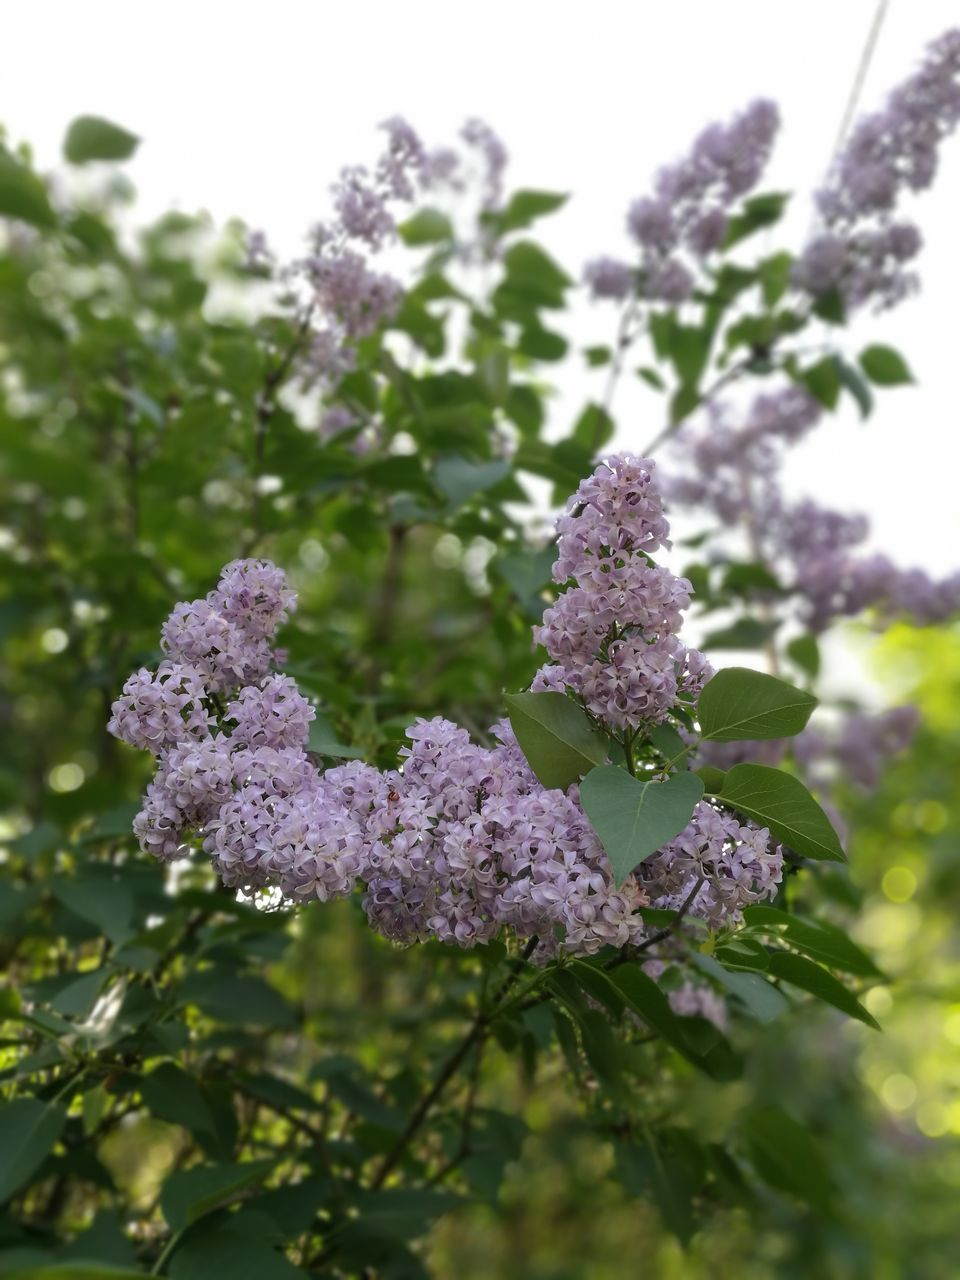 nature, flower, beauty in nature, growth, plant, no people, focus on foreground, day, fragility, outdoors, freshness, lilac, close-up, flower head, sky